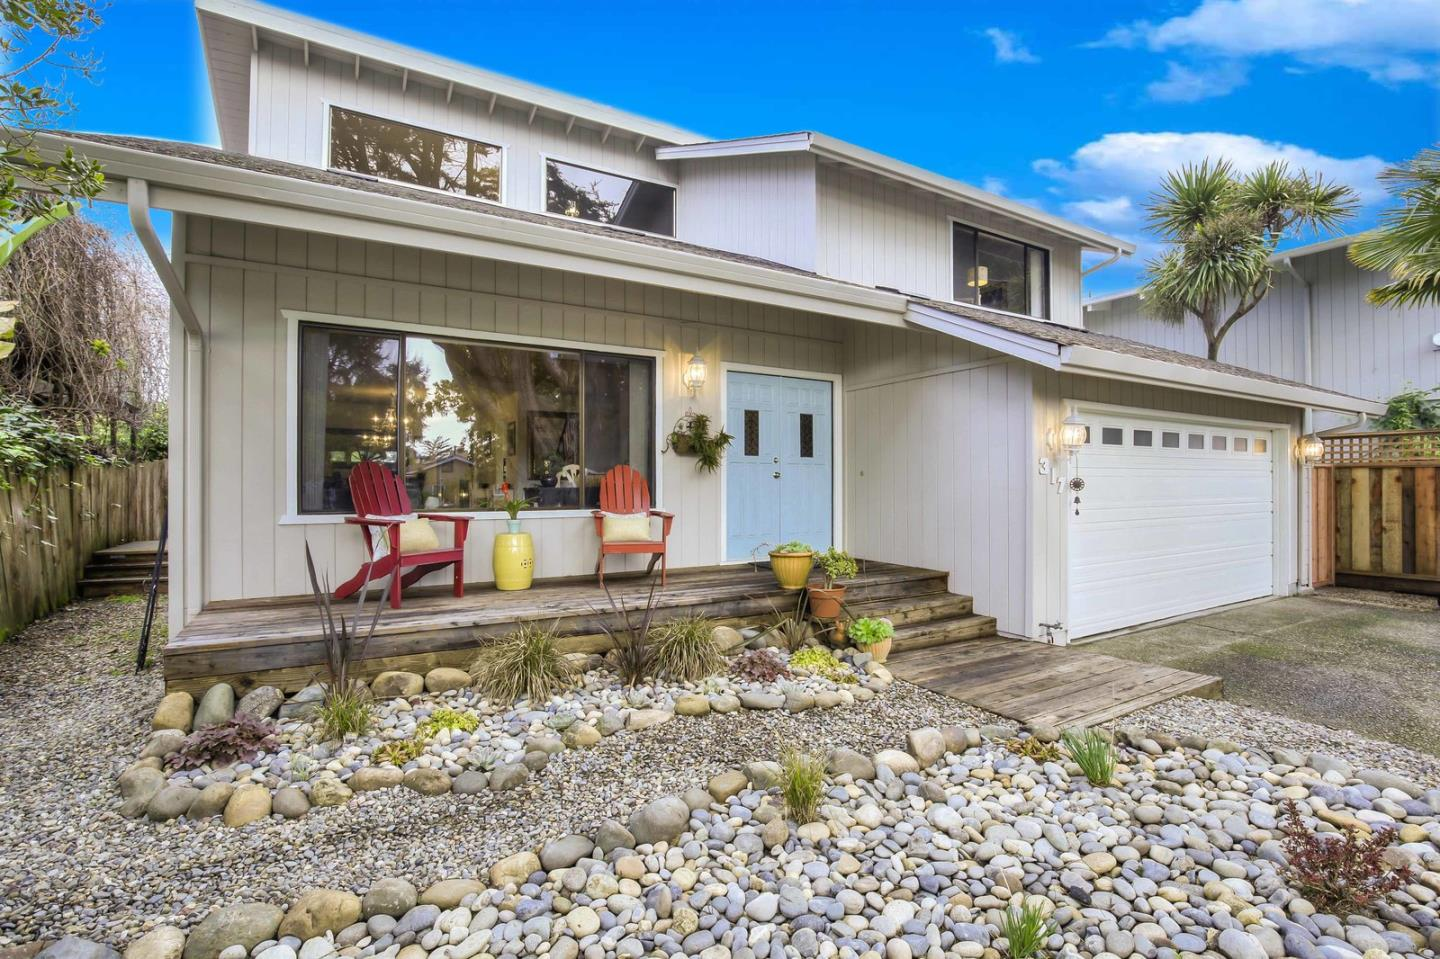 Detail Gallery Image 1 of 1 For 317 Cliff Dr, Aptos, CA, 95003 - 4 Beds | 2/1 Baths